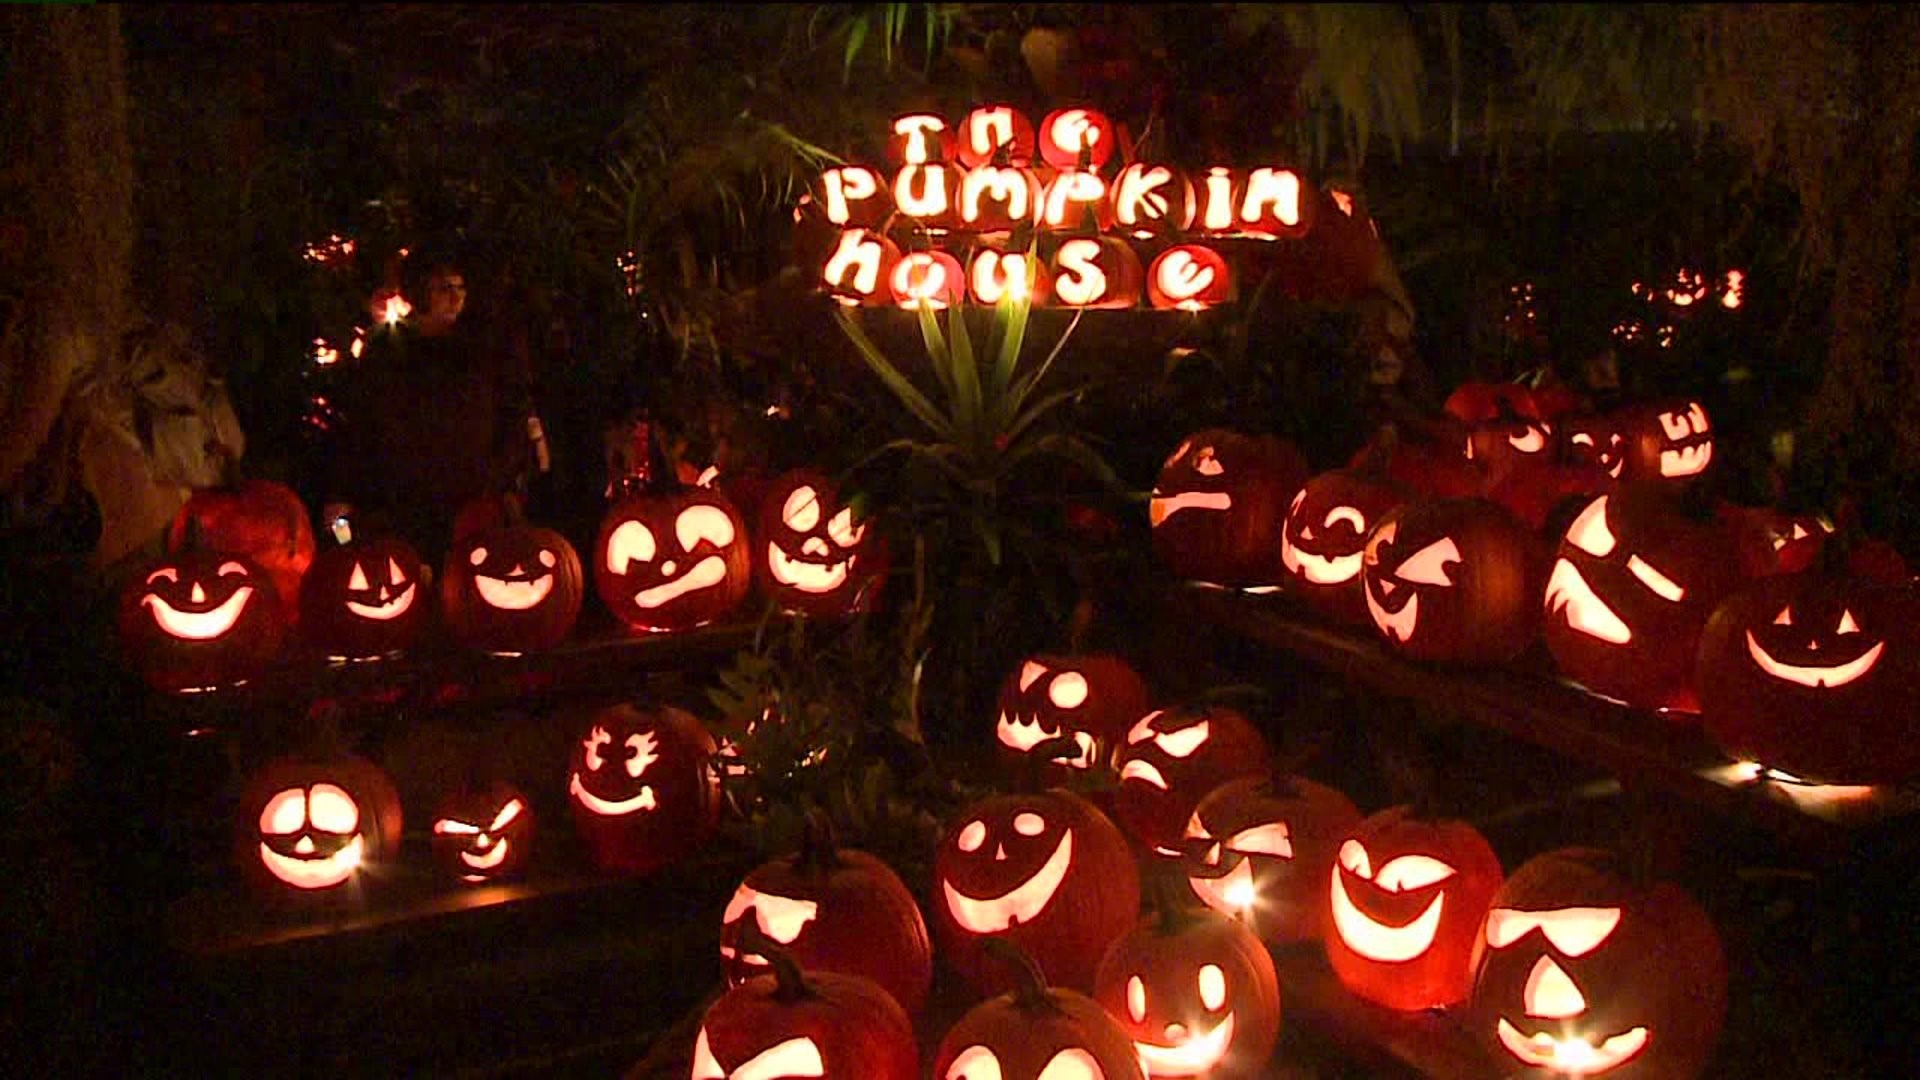 Final Night For Annual Pumpkin House At Creekside Gardens Wnep Com